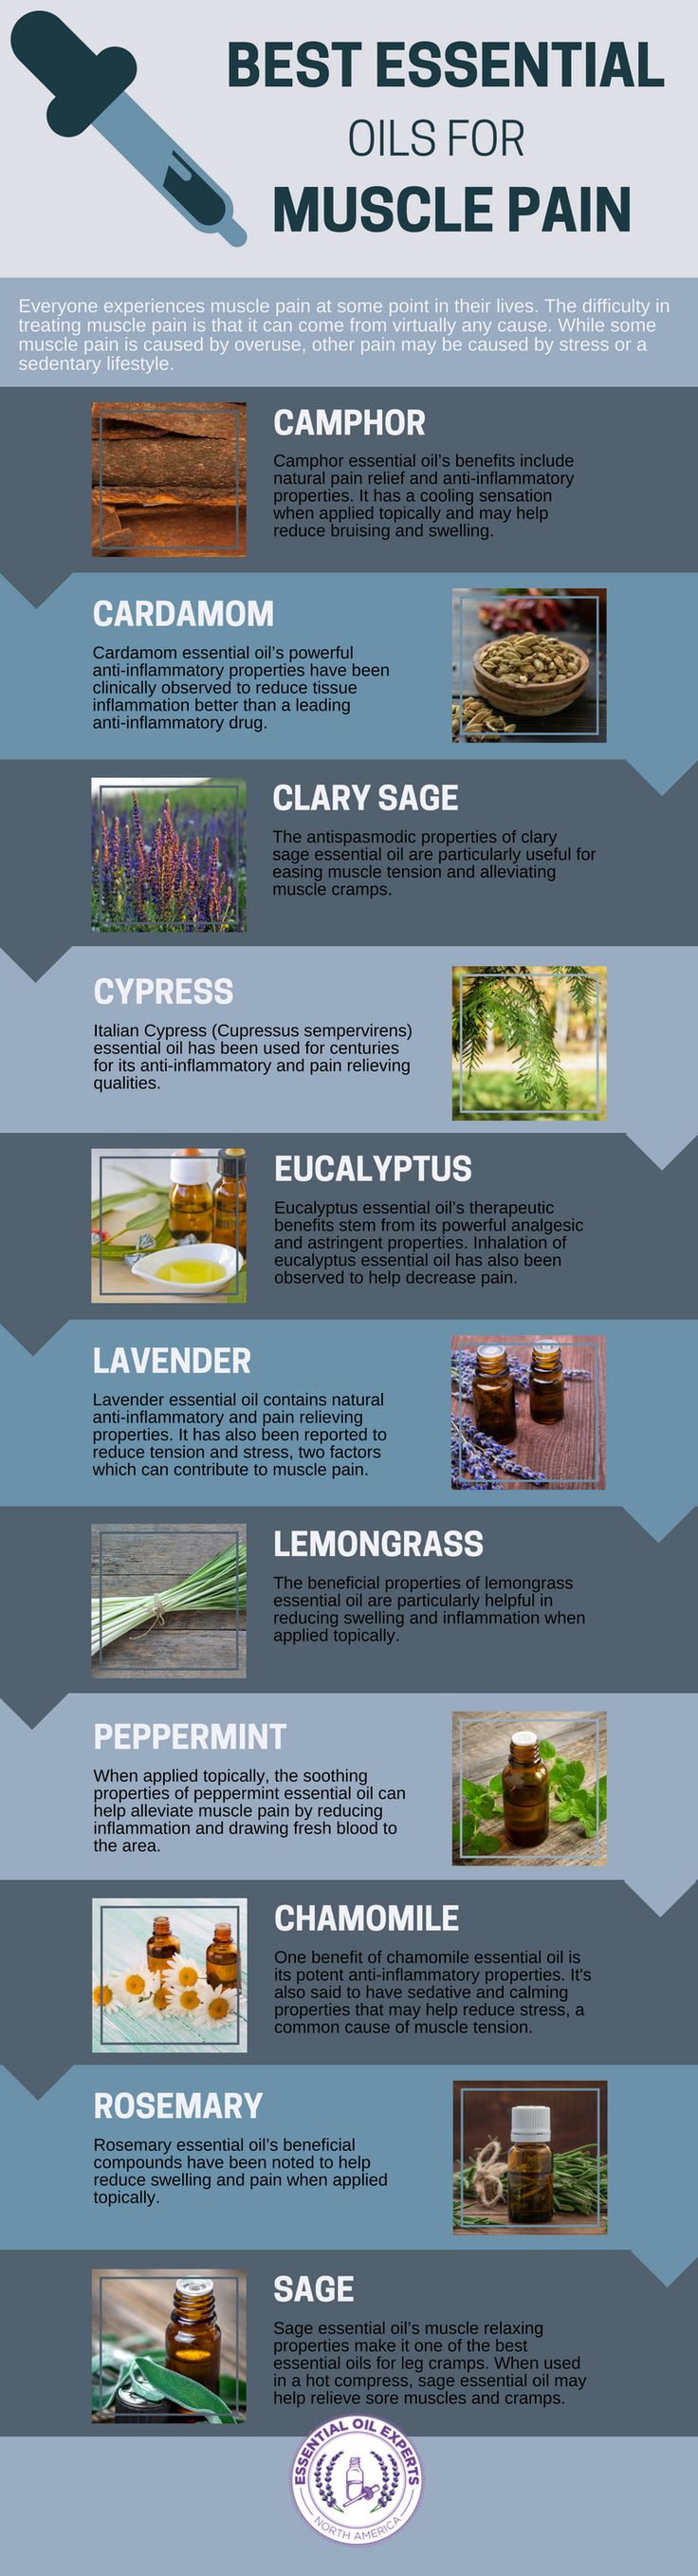 The Best Essential Oils for Muscle Pain